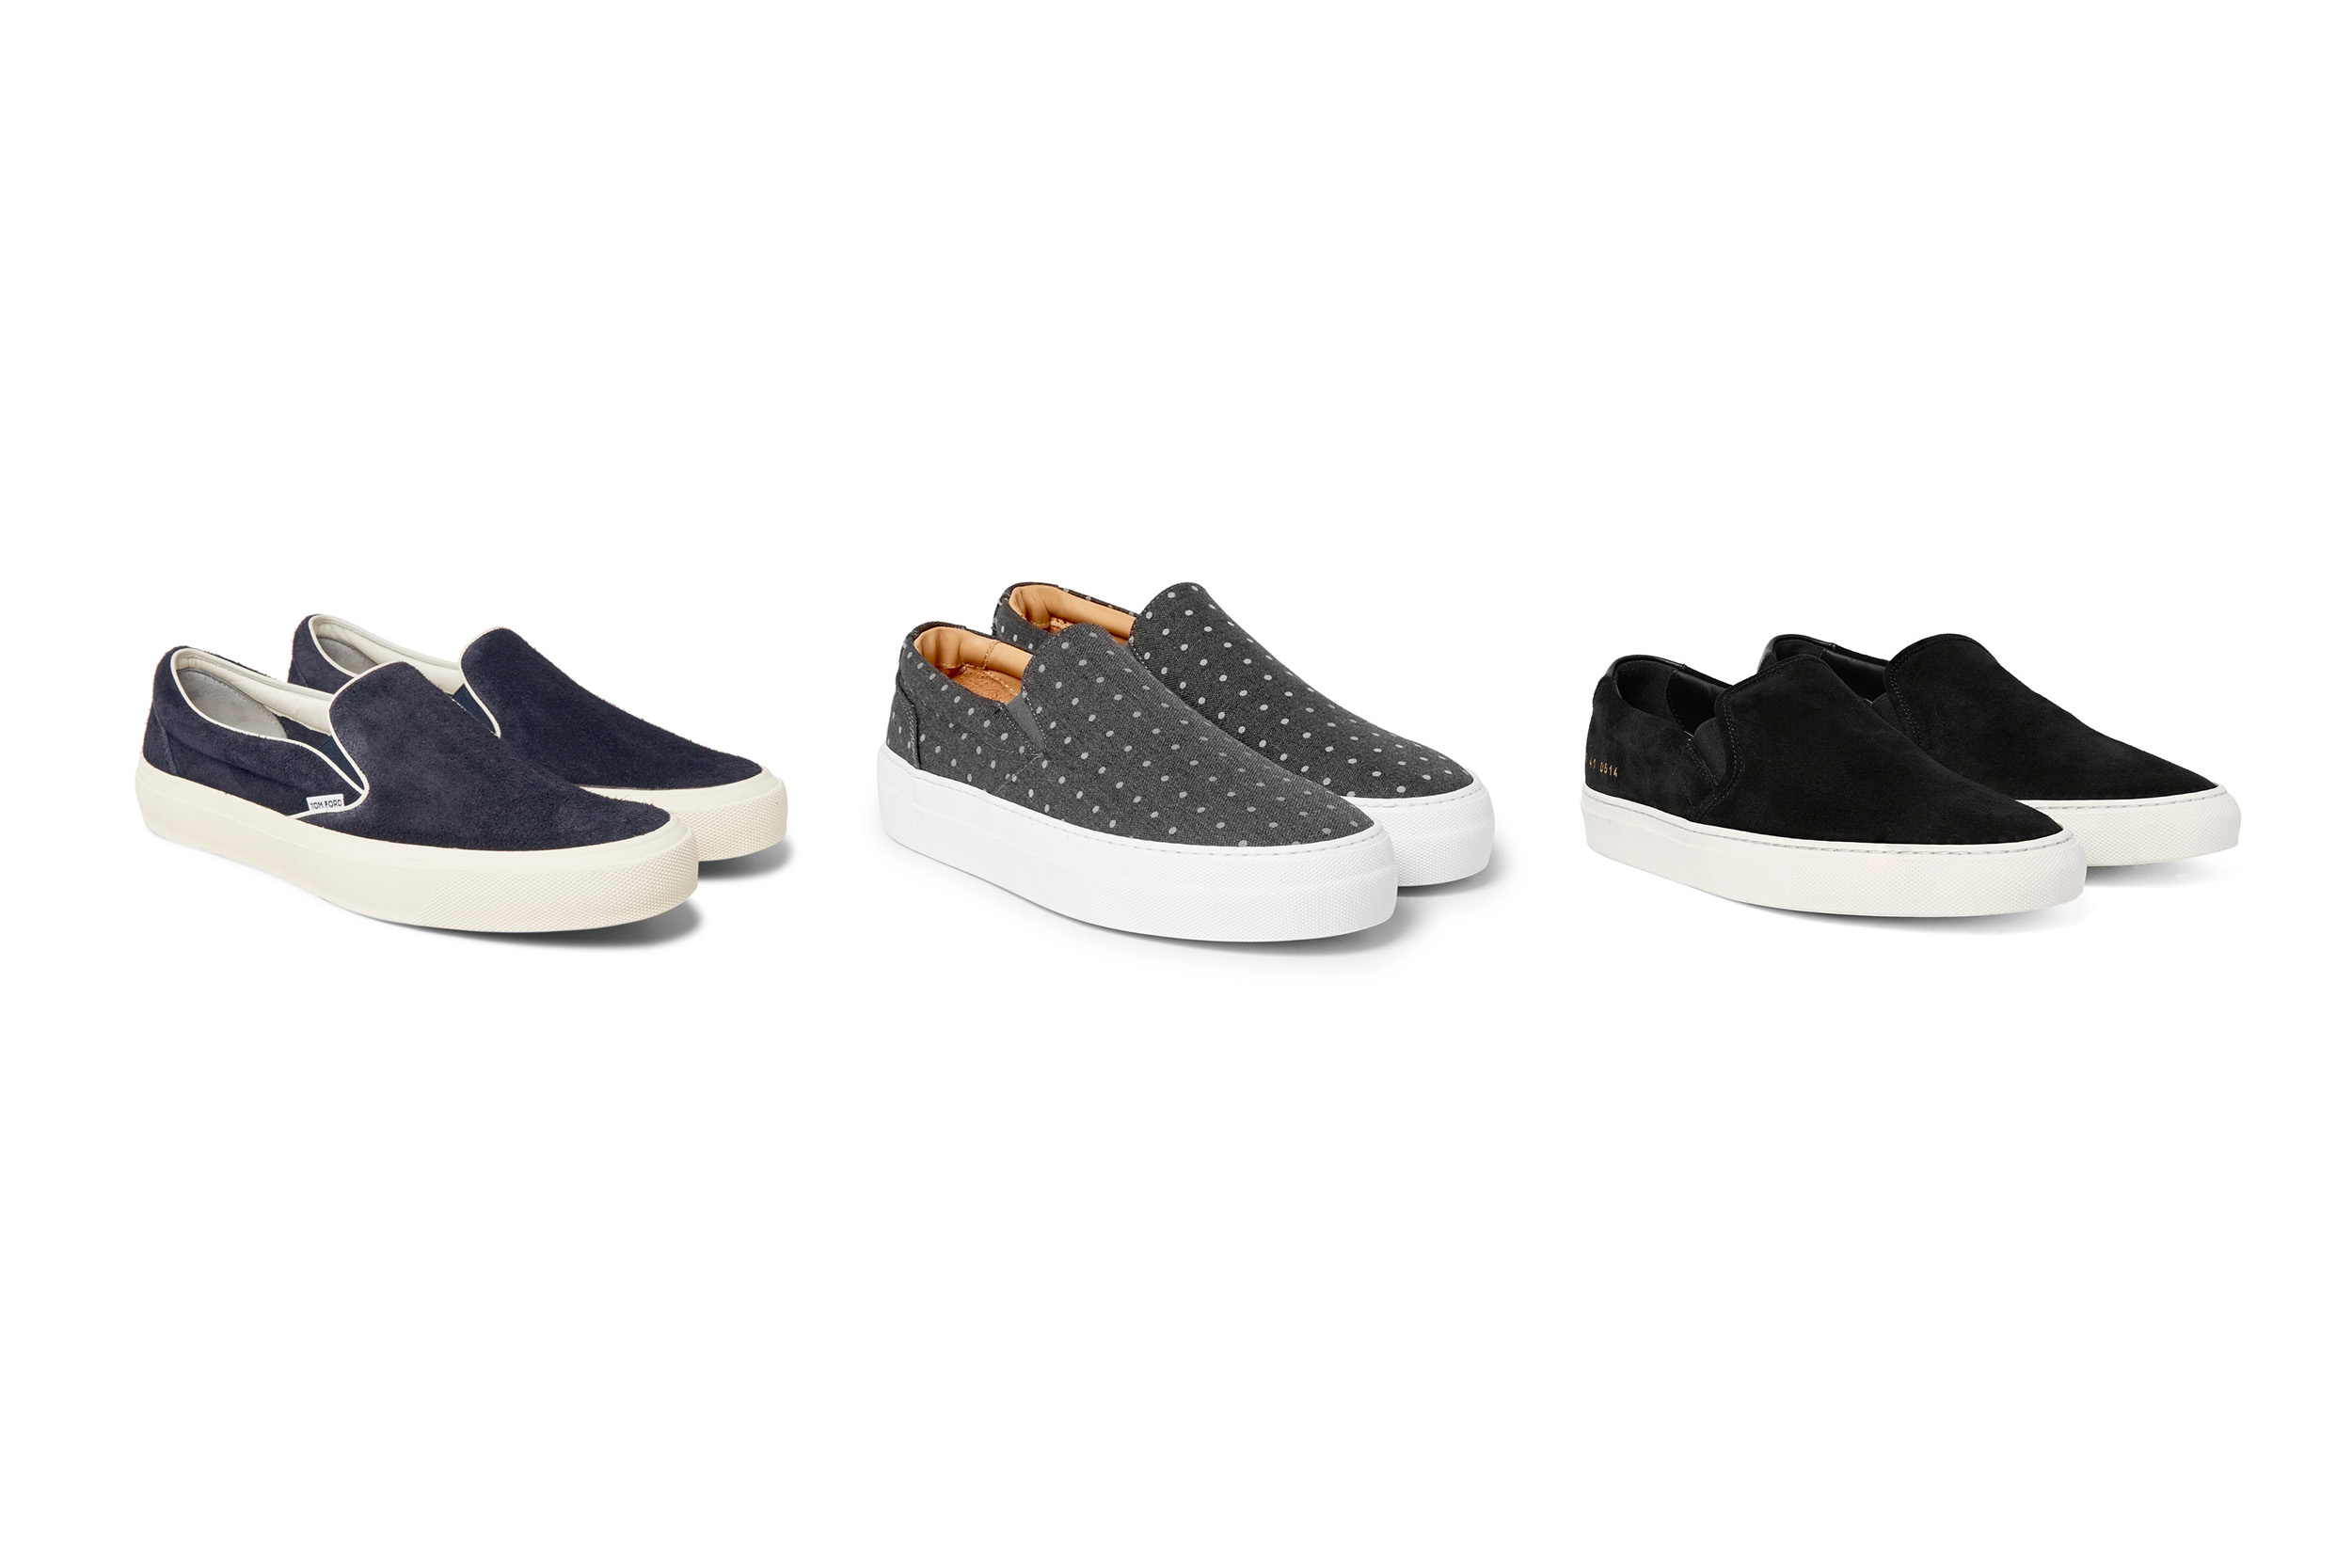 slip-on sneakers banner